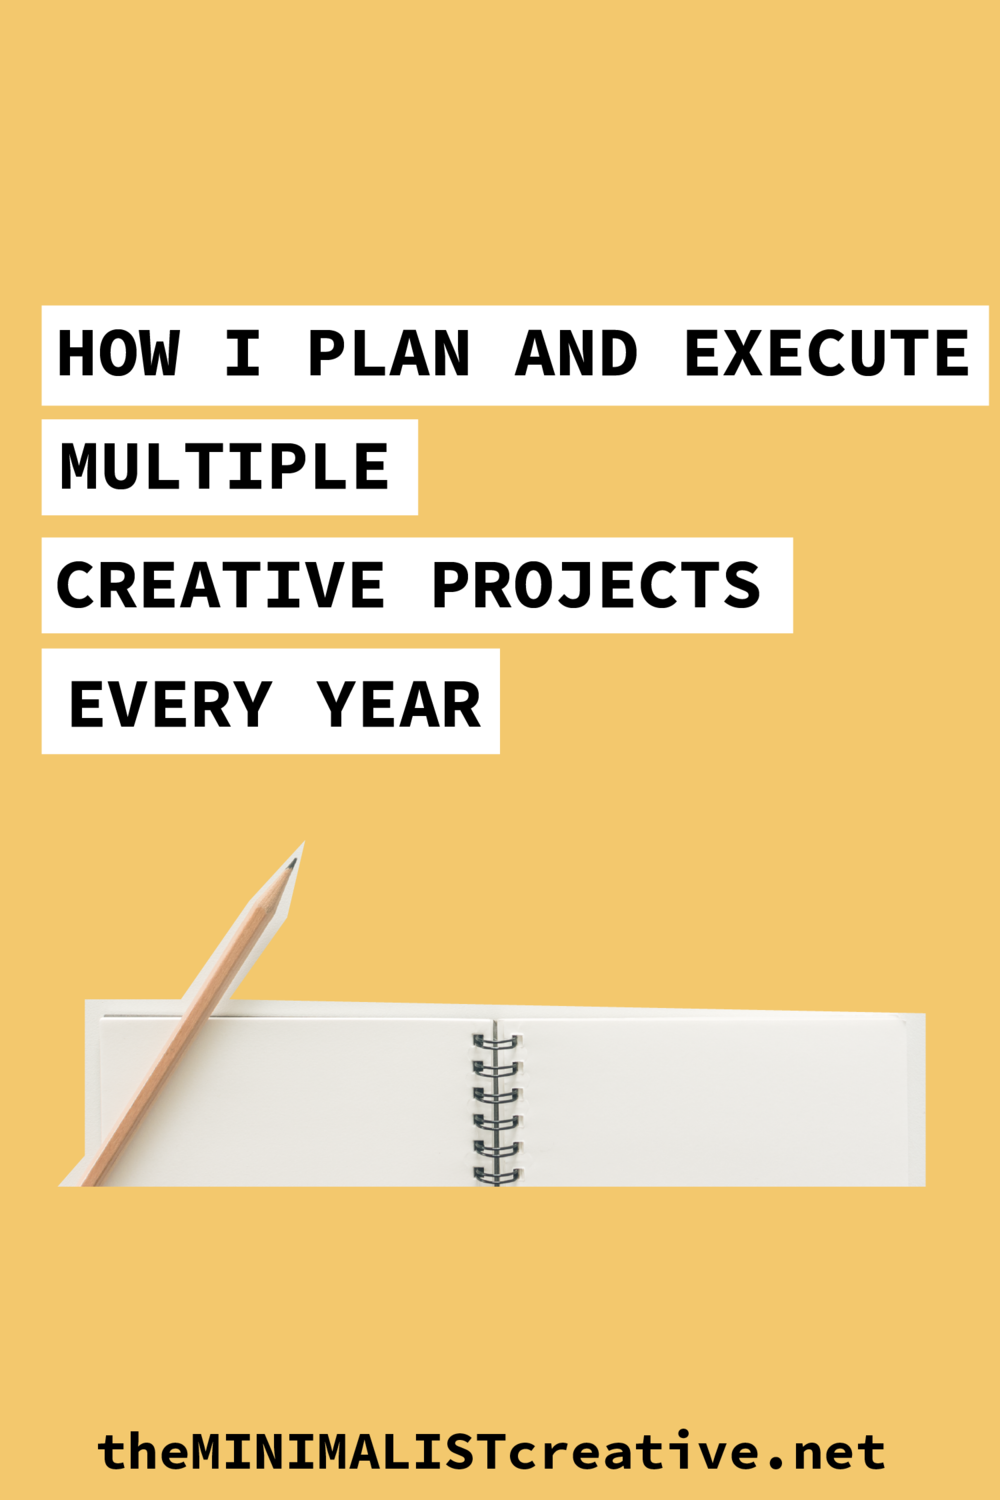 How I Plan and Execute Multiple Creative Projects Every Year